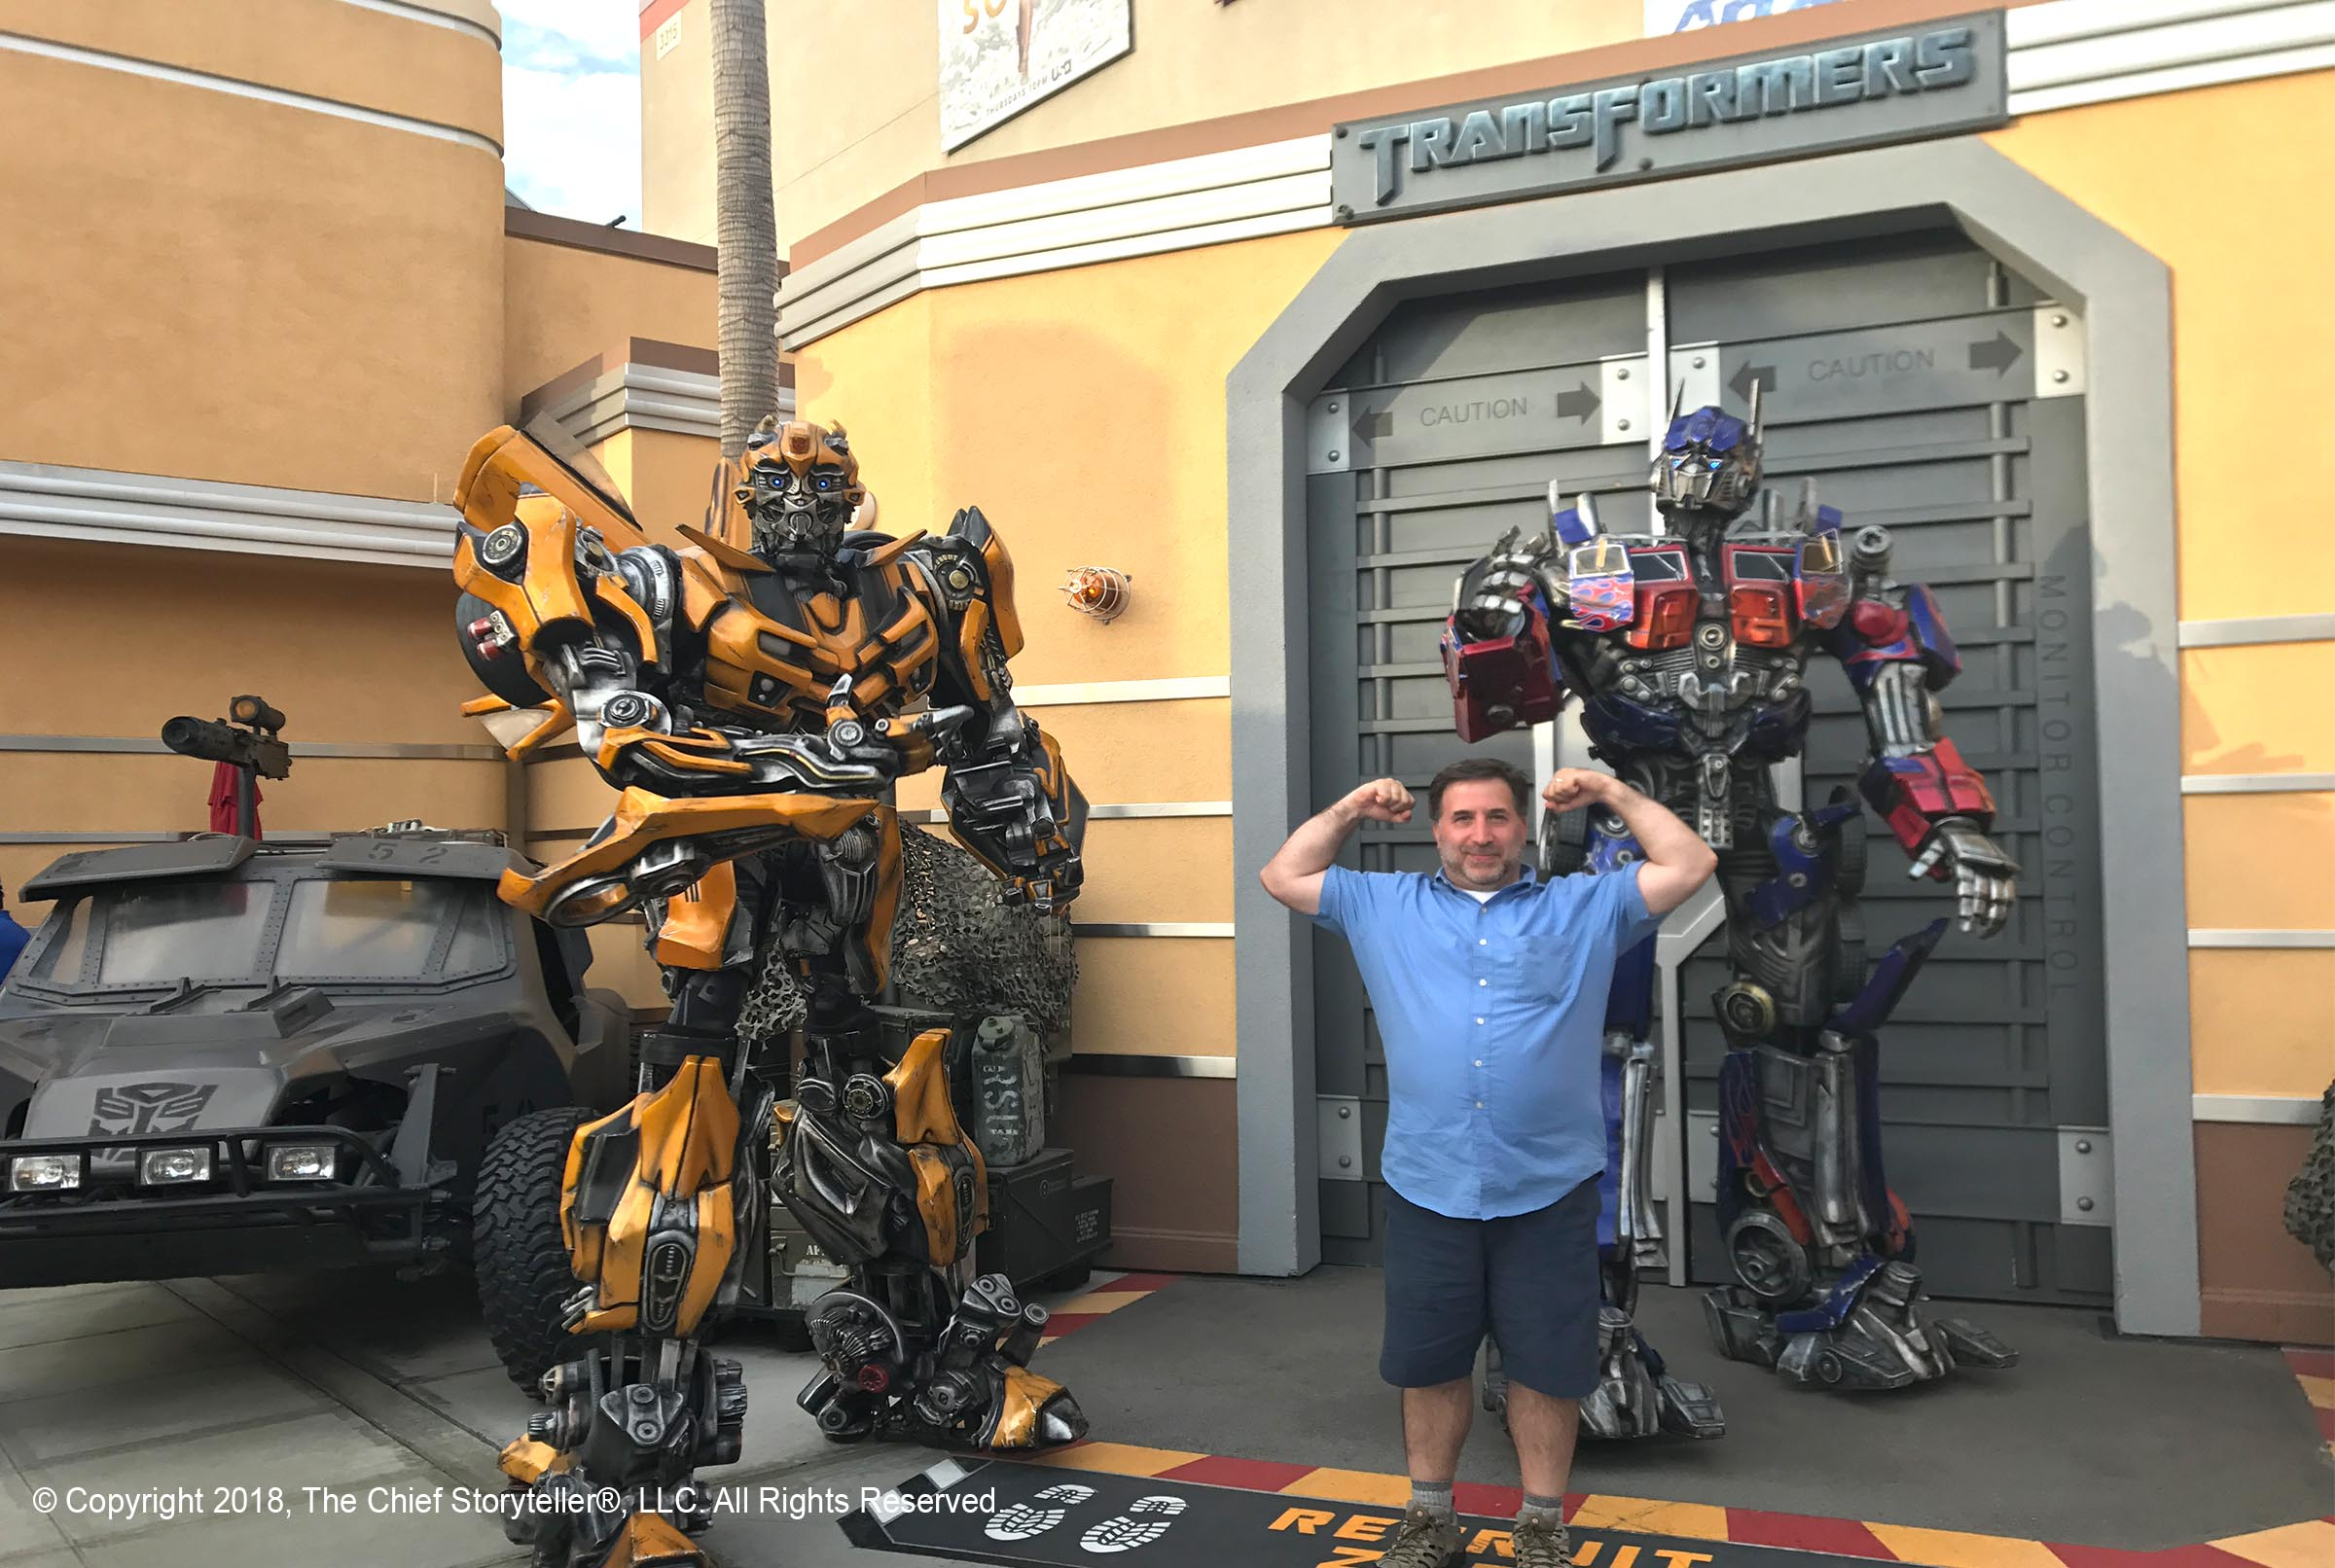 ira koretsky at universal studios with transformers in background, showing muscle pose for nFusion Nassal company